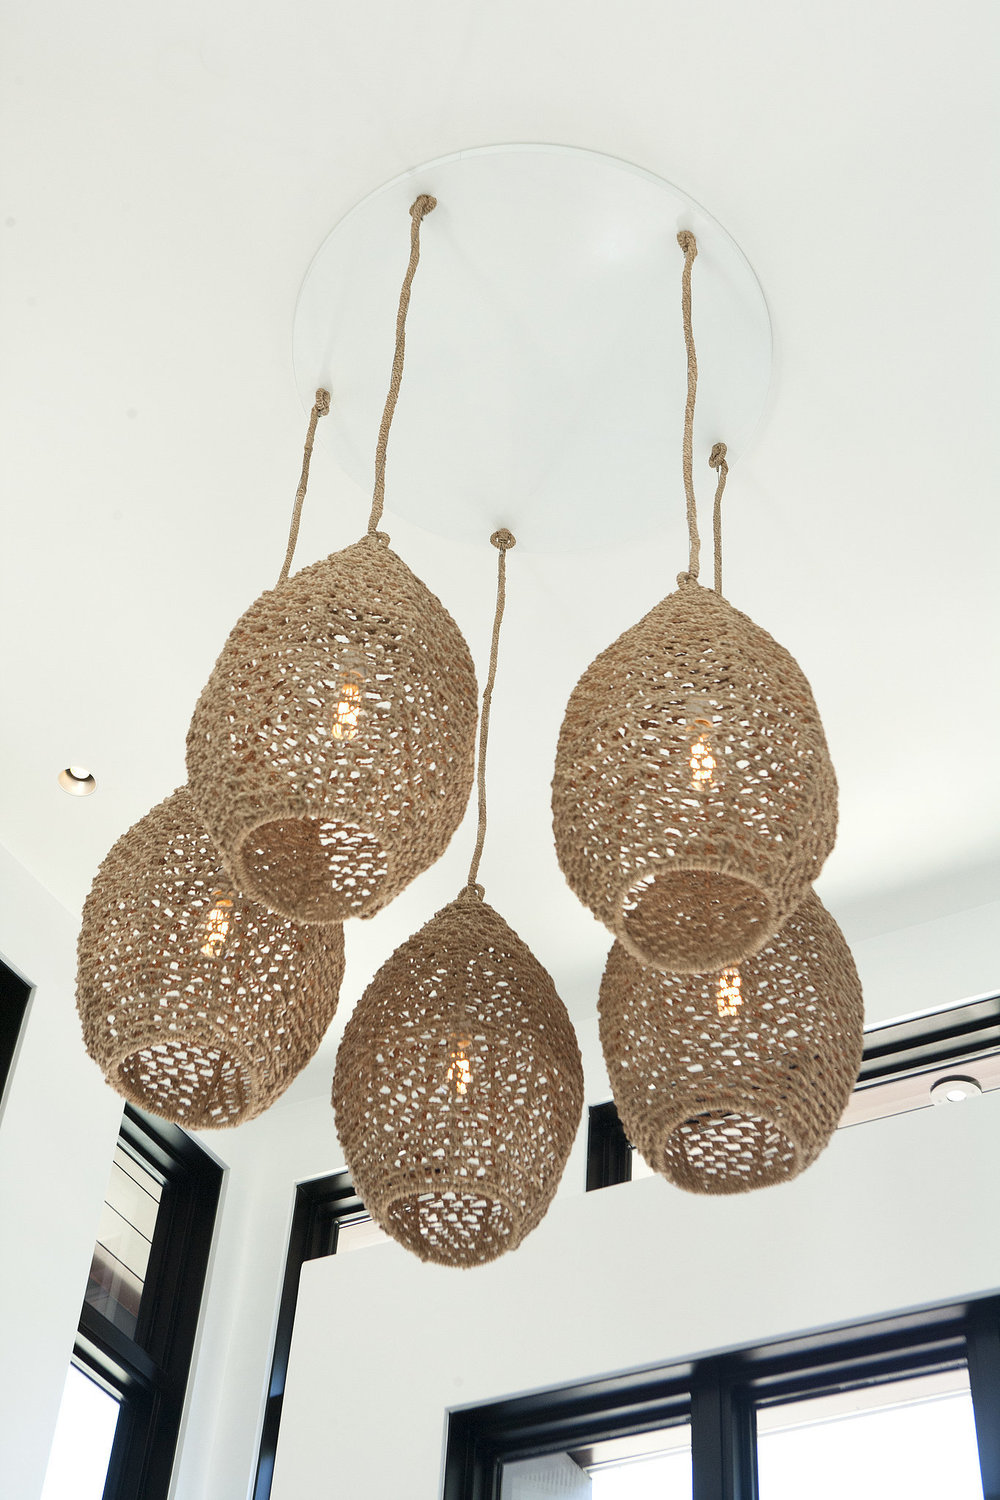 foyer-pendant-lights-woven-from-natural-material-resemble.jpg